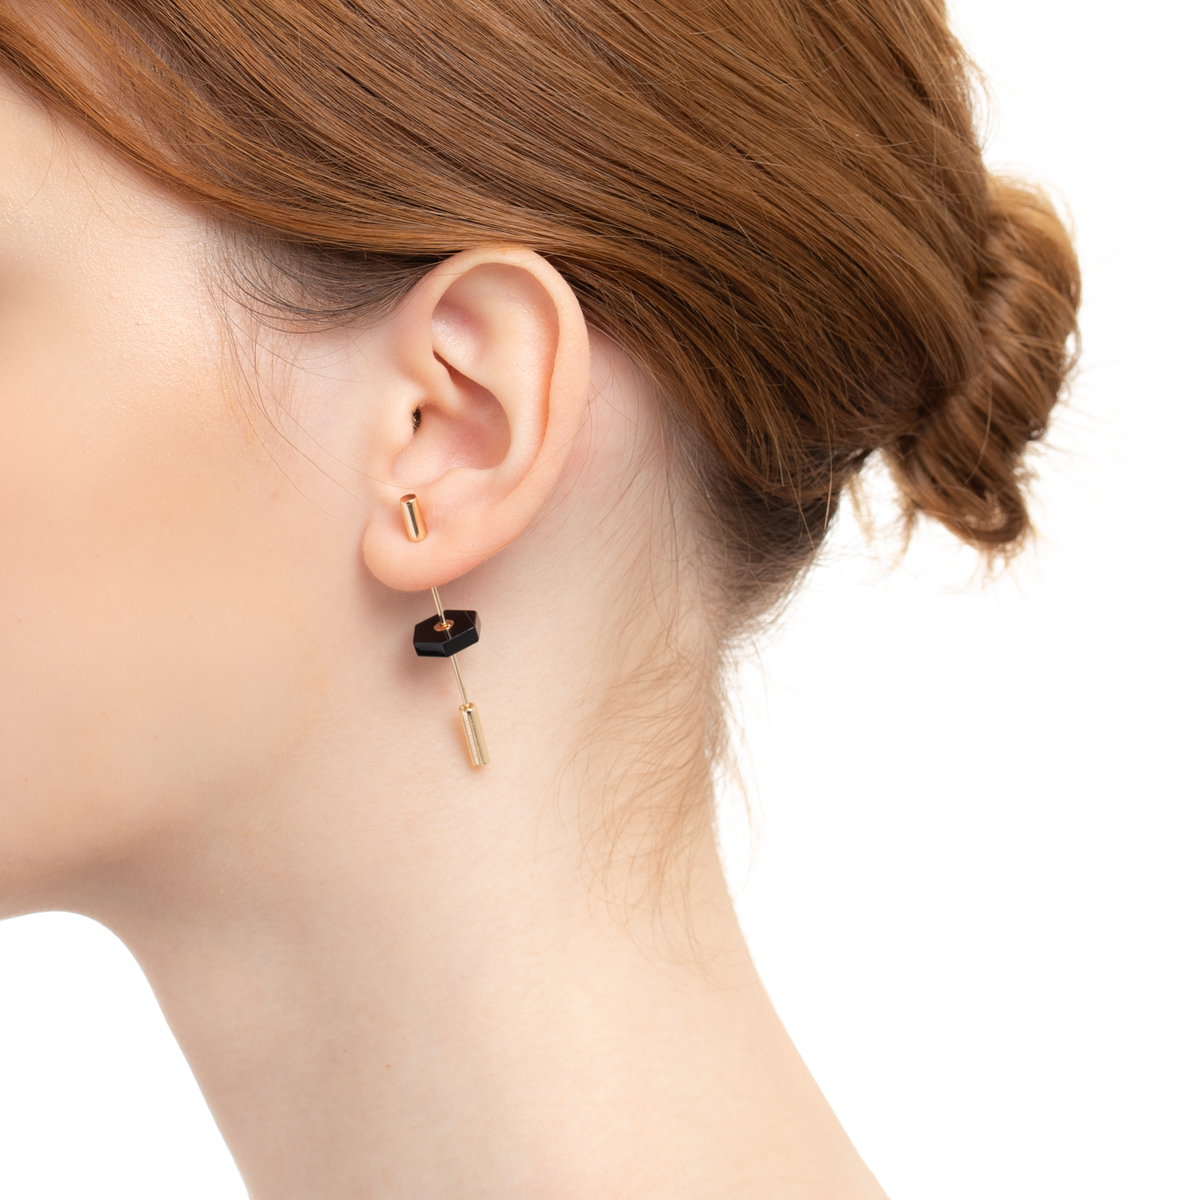 【NEW】Short Spear Earring with Onyx IN76KME / CT20GCC new 新作 天然石 ショートスピアイヤリング K10 K18 インダストリア